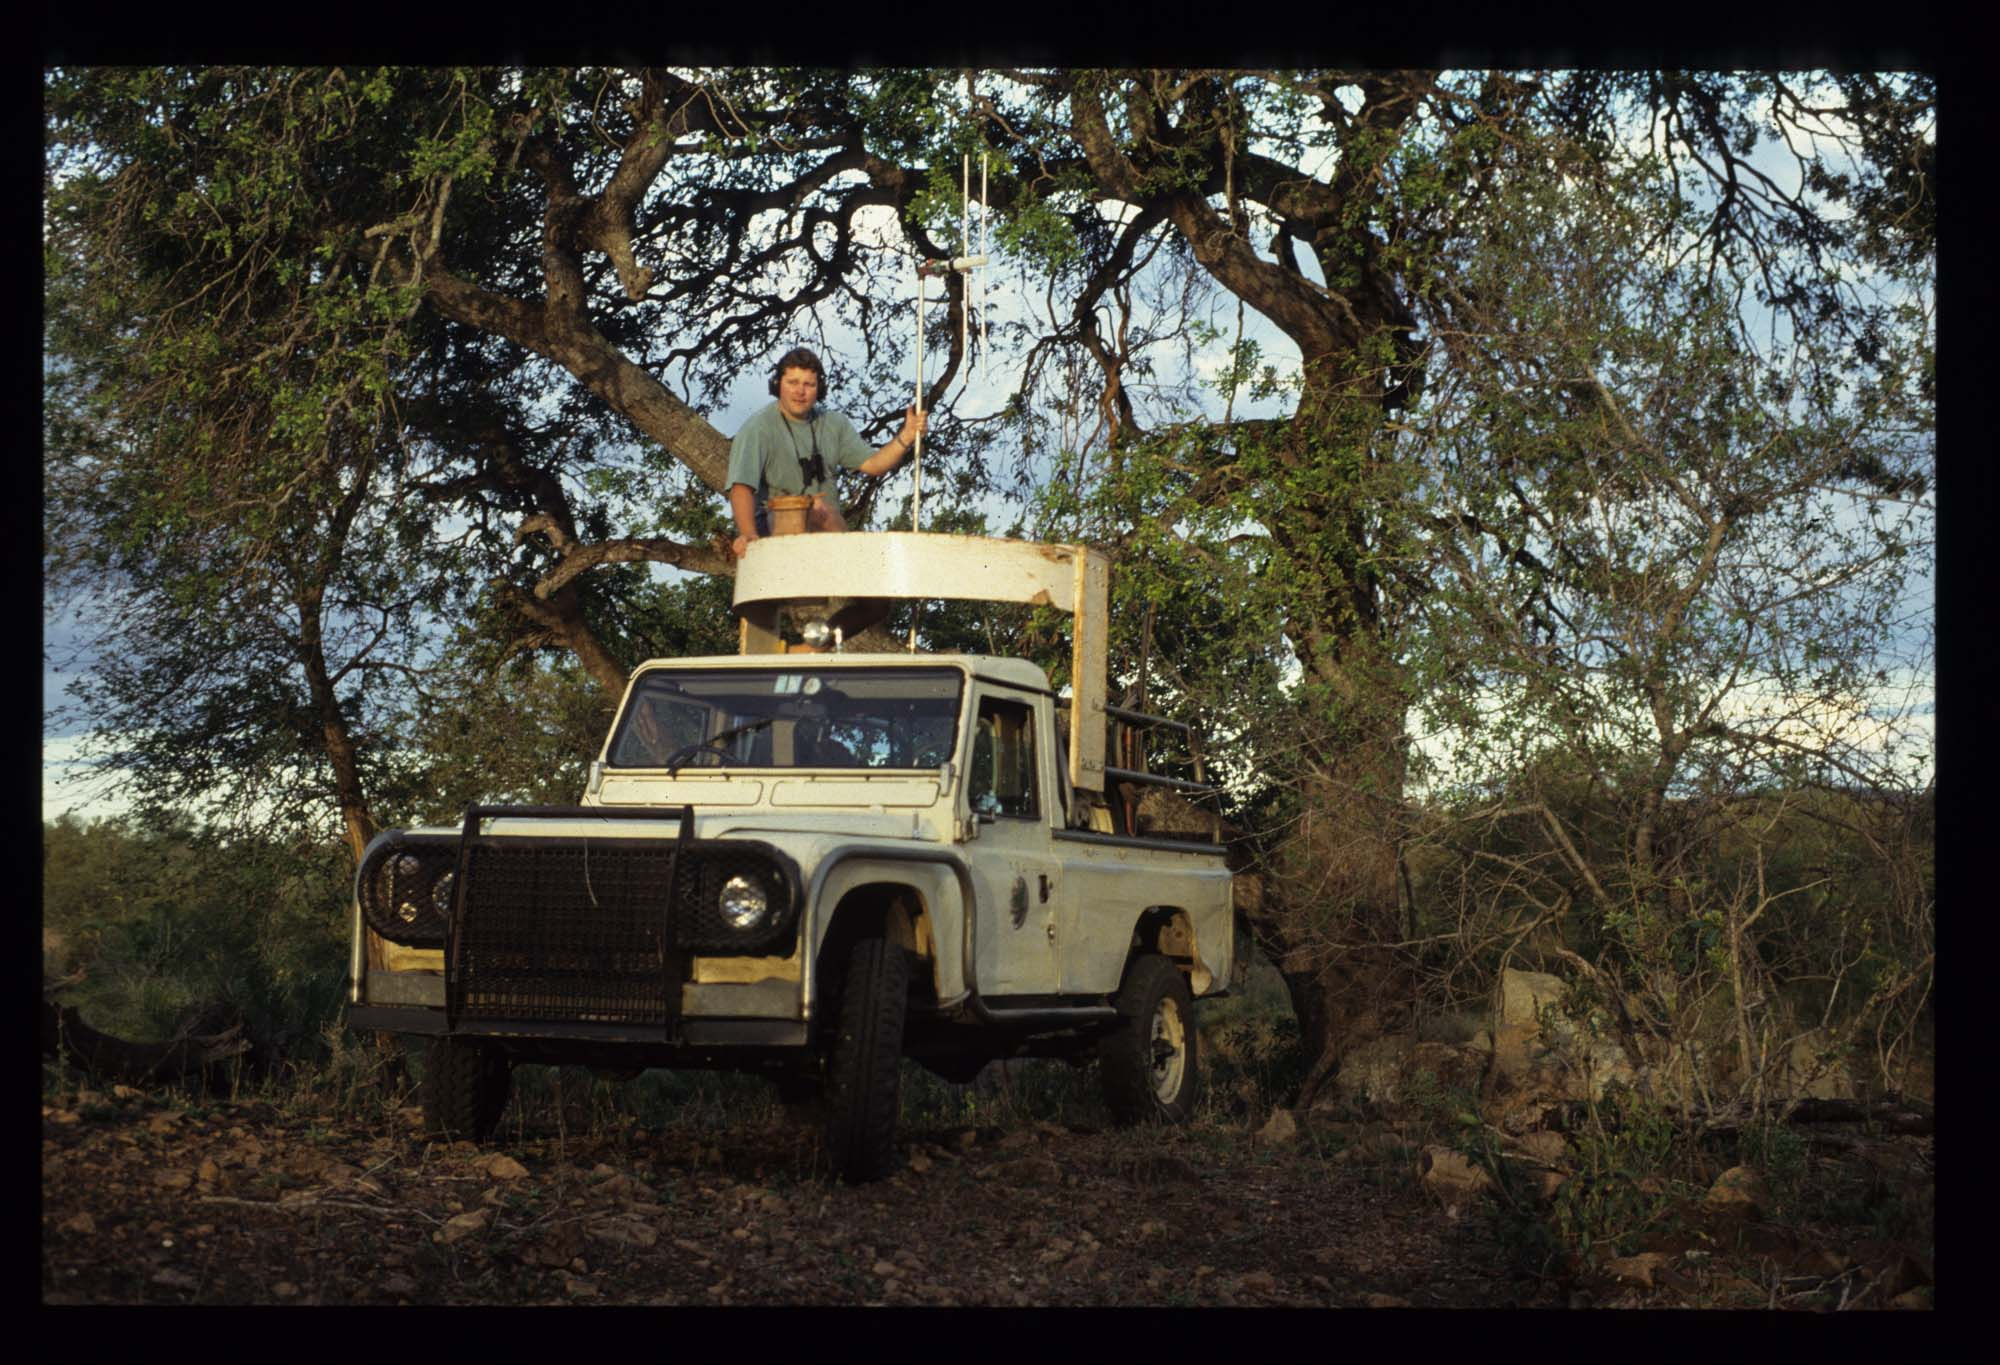 Paul Funston in his early days, tracking lions in Kruger, South Africa